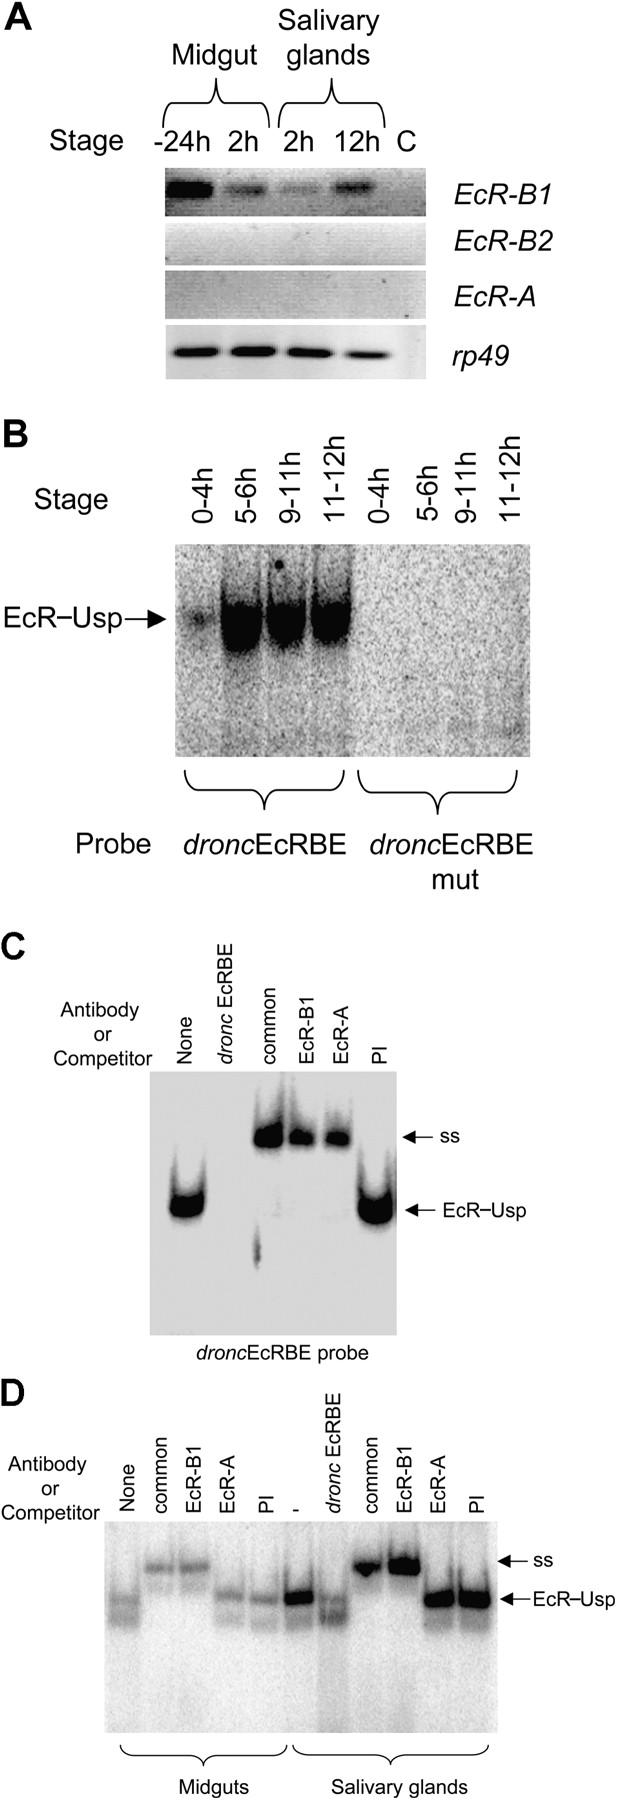 Salivary glands and midgut express EcR-B1, which binds to dronc promoter. (A) Salivary glands and midgut were dissected from animals at −24, 2, or 12 h relative to puparium formation. RNA was analyzed by RT-PCR to detect EcR isoform expression. Rp49 was used as a control. (B) 9 μg of nuclear extracts prepared from various staged animals were incubated with the dronc EcRBE or the EcRBE mutant probe for 20 min. Complexes were analyzed as in Figs. 4 and 5 . EcR–Usp complex and supershift (ss) are indicated. Developmental stages are shown as hours relative to puparium formation. These stages represent early (0–4 h), mid (5–6 h), and late (9–11 h) prepupae and early (11–12 h) pupae. (C) EMSA was performed as in B in the presence of dronc EcRBE cold competitor, 2 μl of EcR common antibody, EcR-B1, or EcR-A. EcR–Usp (EcR) and supershifted EcR–Usp (ss) complexes are indicated. (D) EMSA was performed as in C with 6 μg on nuclear extract from salivary glands or midguts from 12 h (salivary gland) and 2 h (midgut) staged prepupae. EcR–Usp and supershifted (ss) complexes are shown. 40 ng of cold competitor ( dronc EcRBE) was also added where indicated.